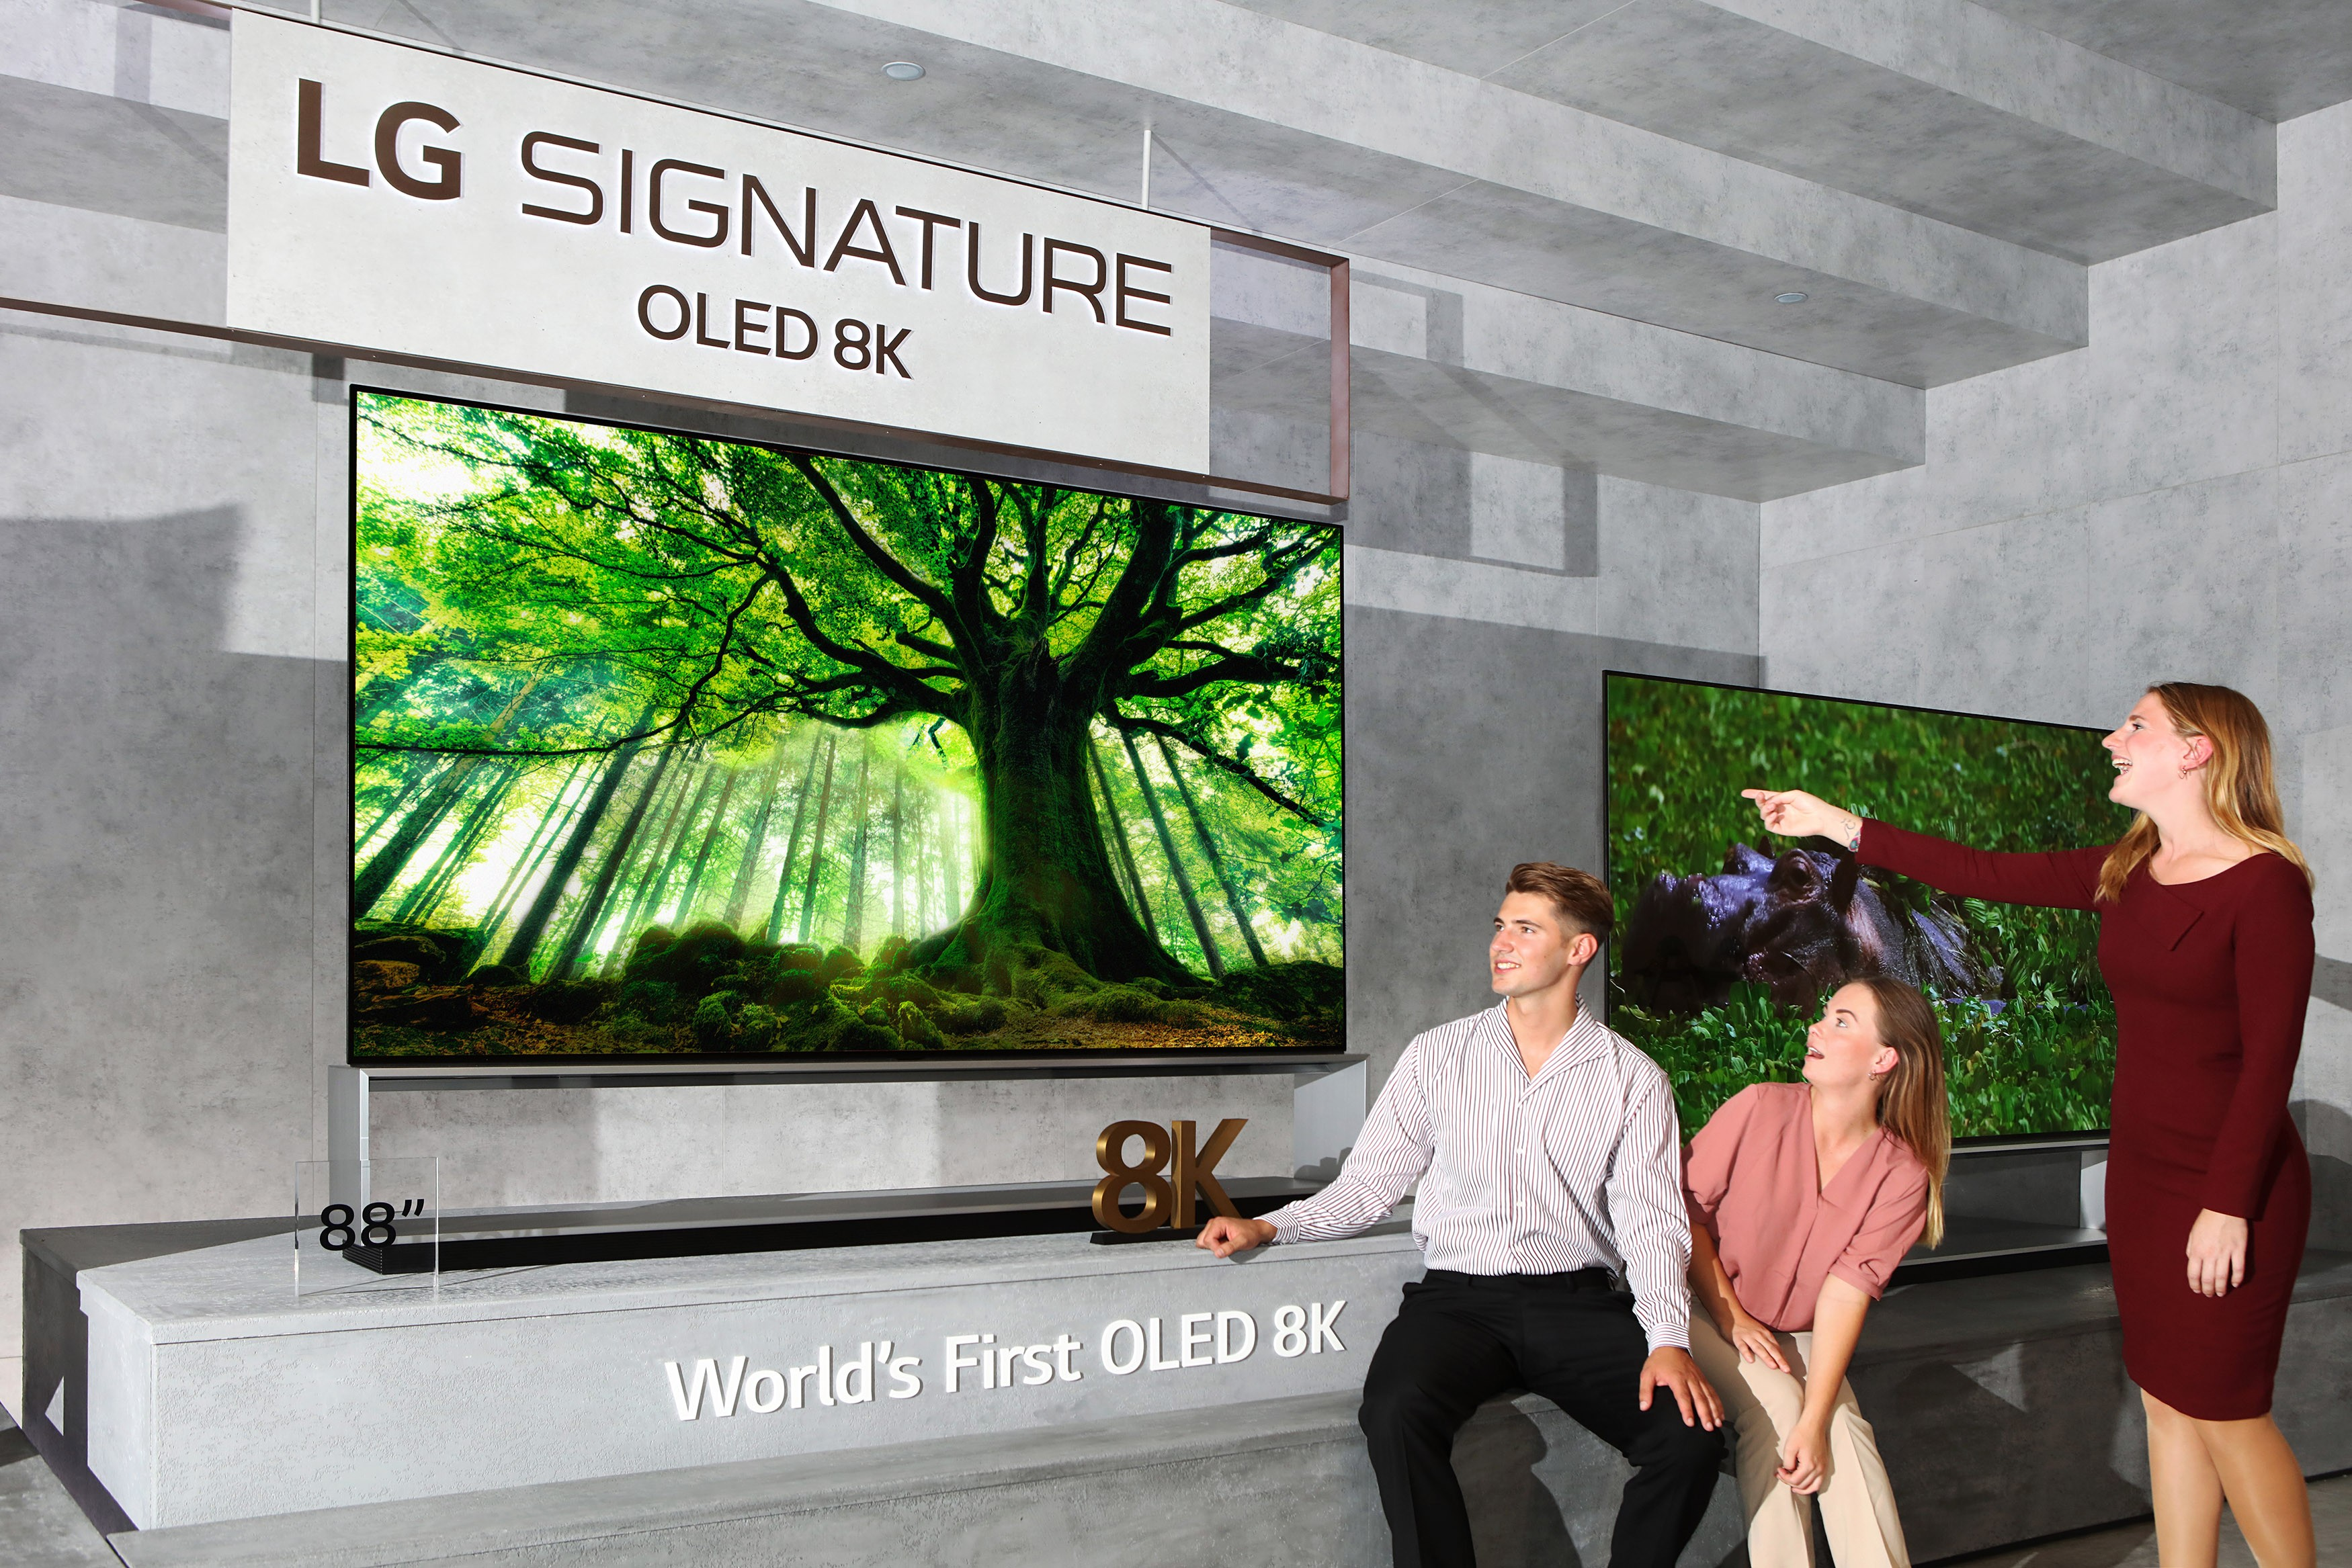 Three models admiring the LG SIGNATURE OLED 8K TV while it displays an enormous tree.